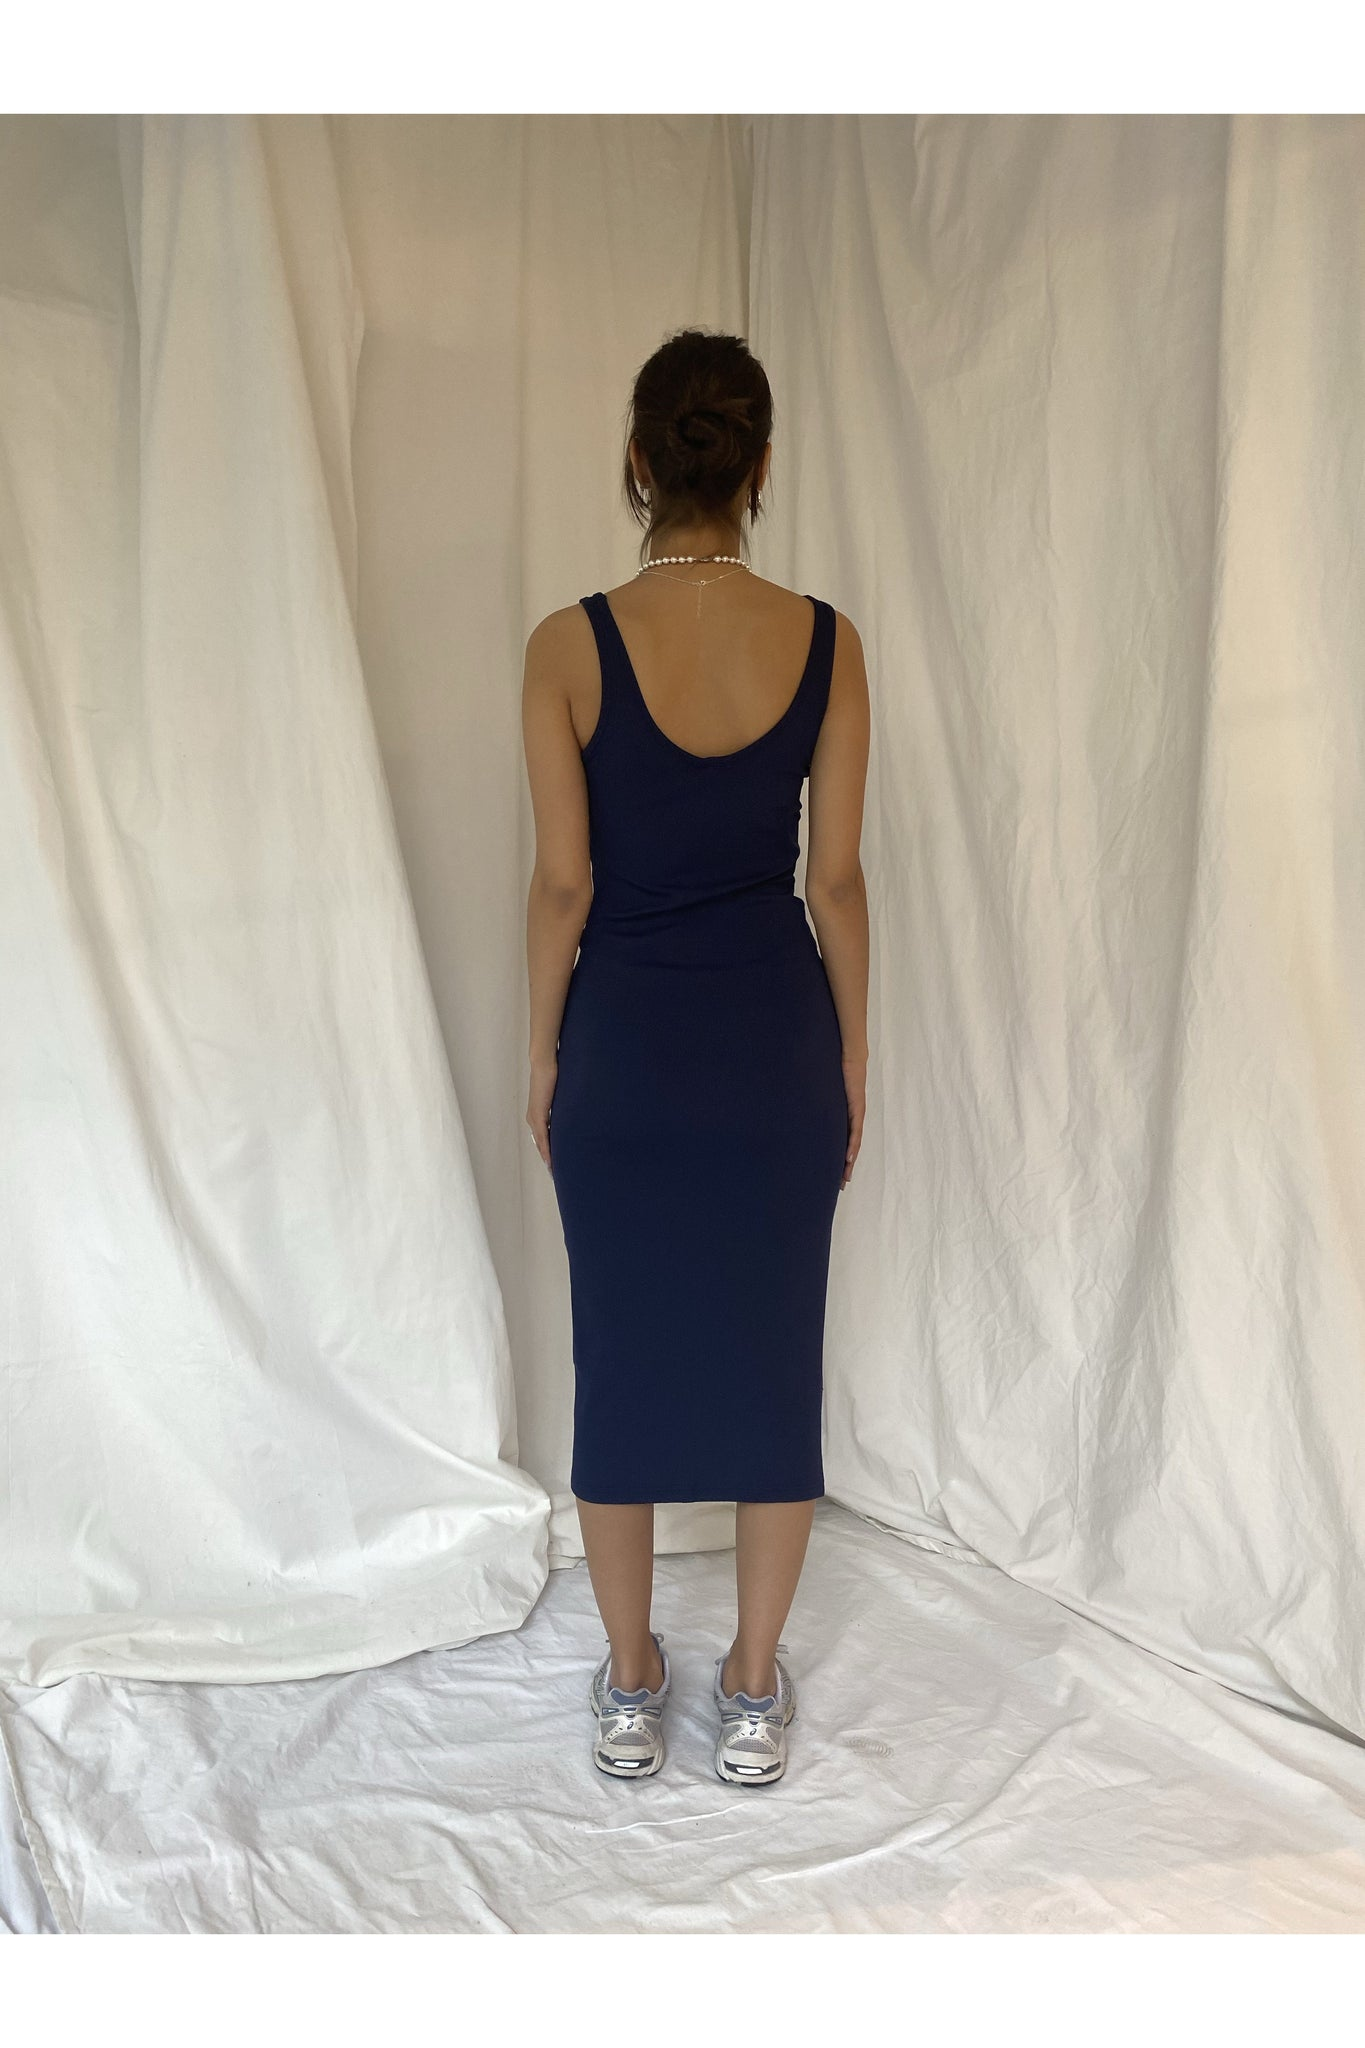 RIBBED TUBE DRESS - BEYOND STUDIOS